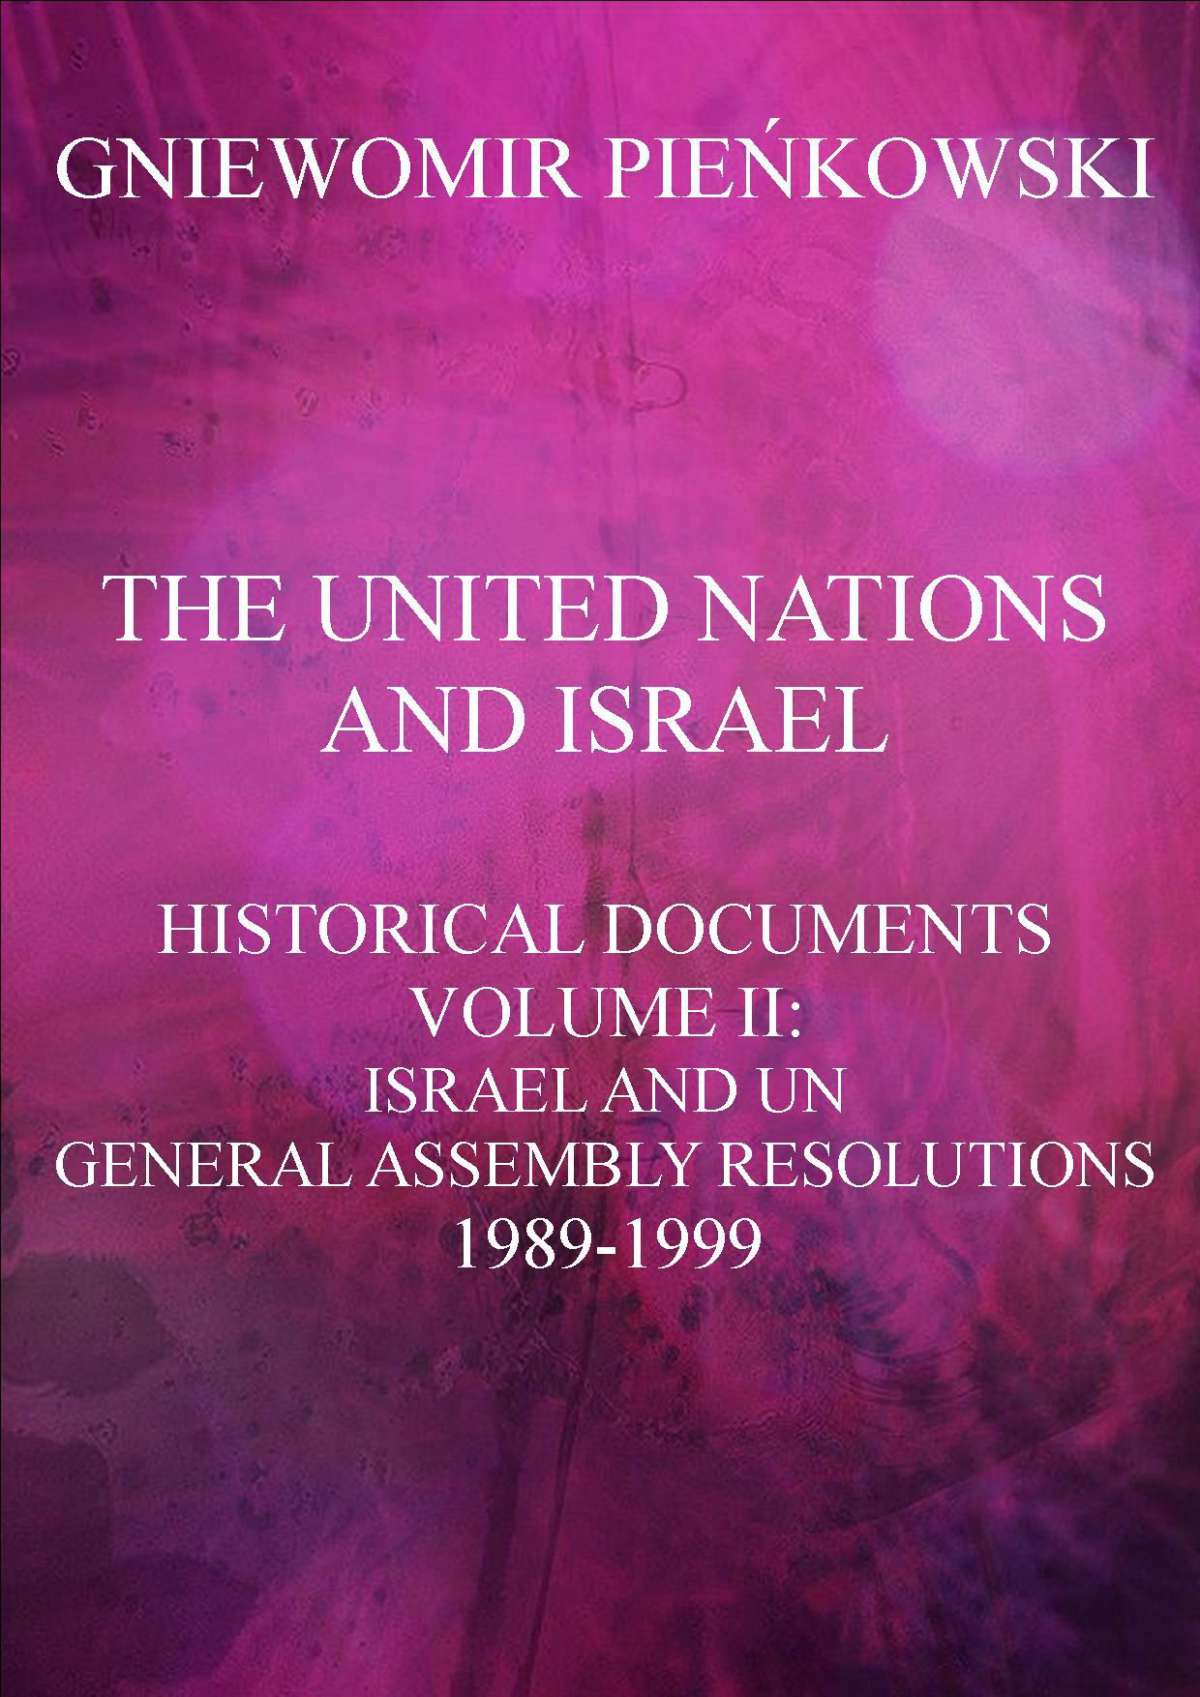 The United Nations and Israel. Historical Documents. Volume II: Israel and UN General Assembly Resolutions 1989-1999 - Ebook (Książka PDF) do pobrania w formacie PDF